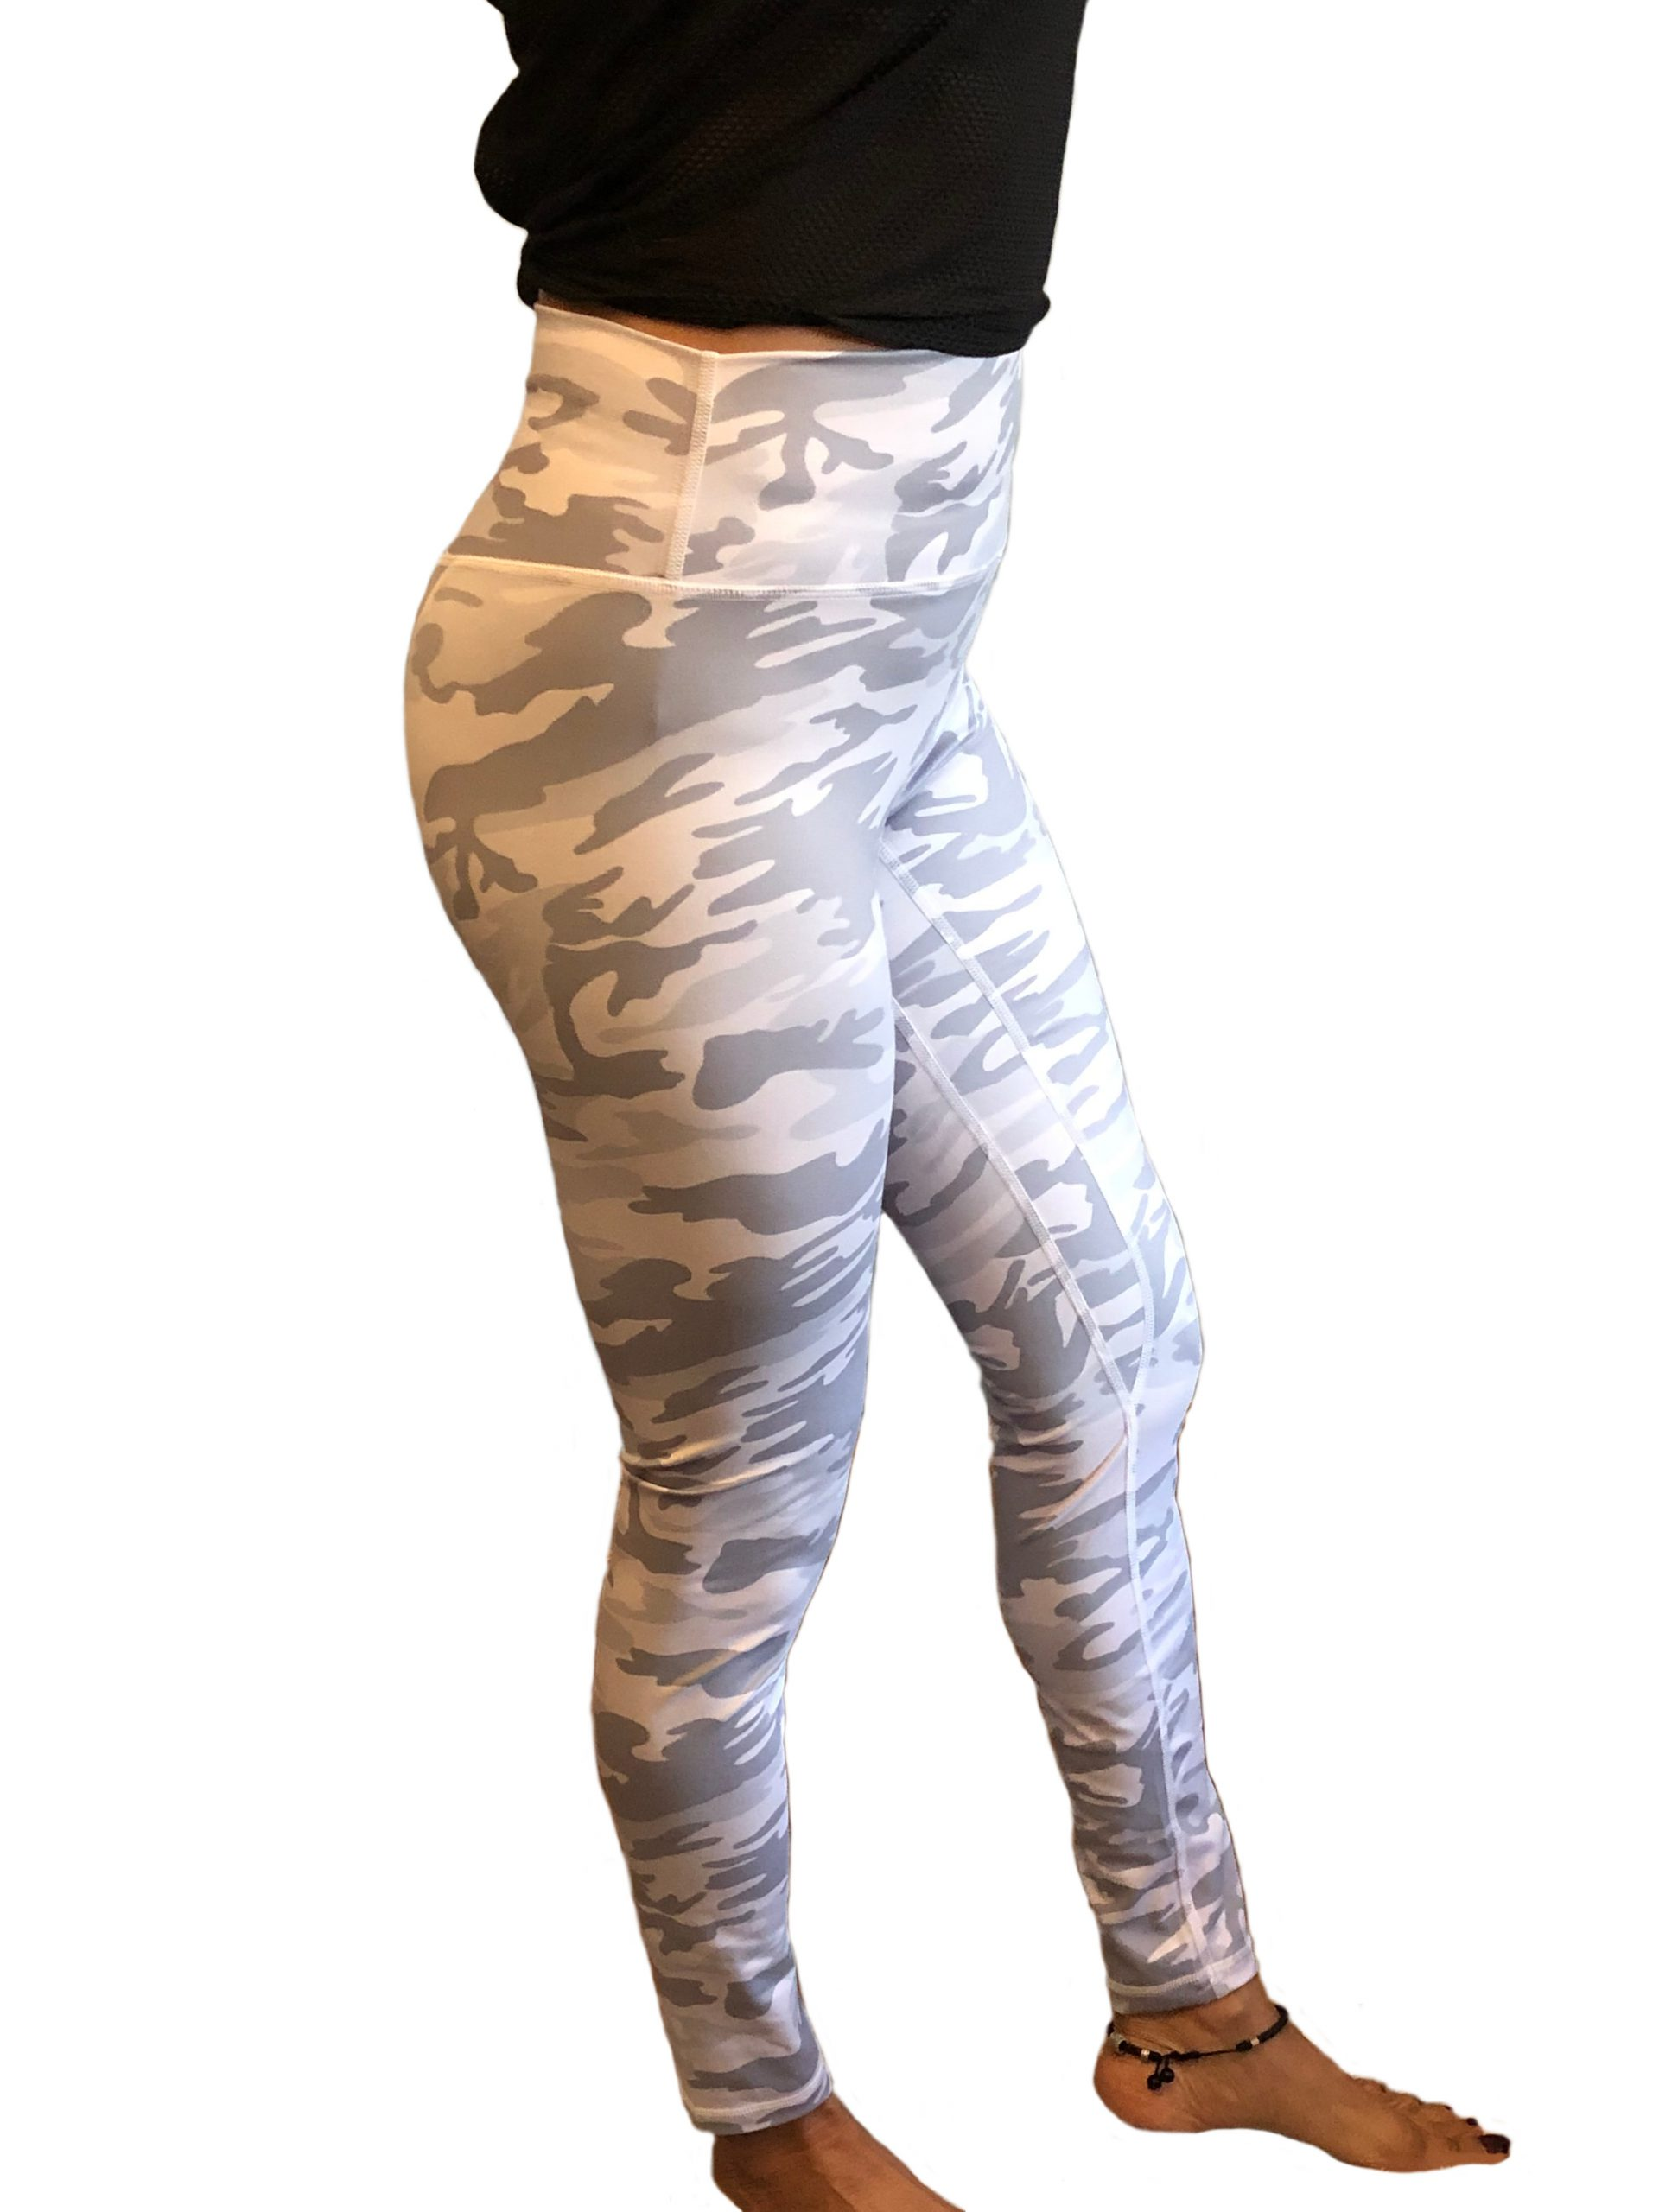 Womens white camouflage leggings